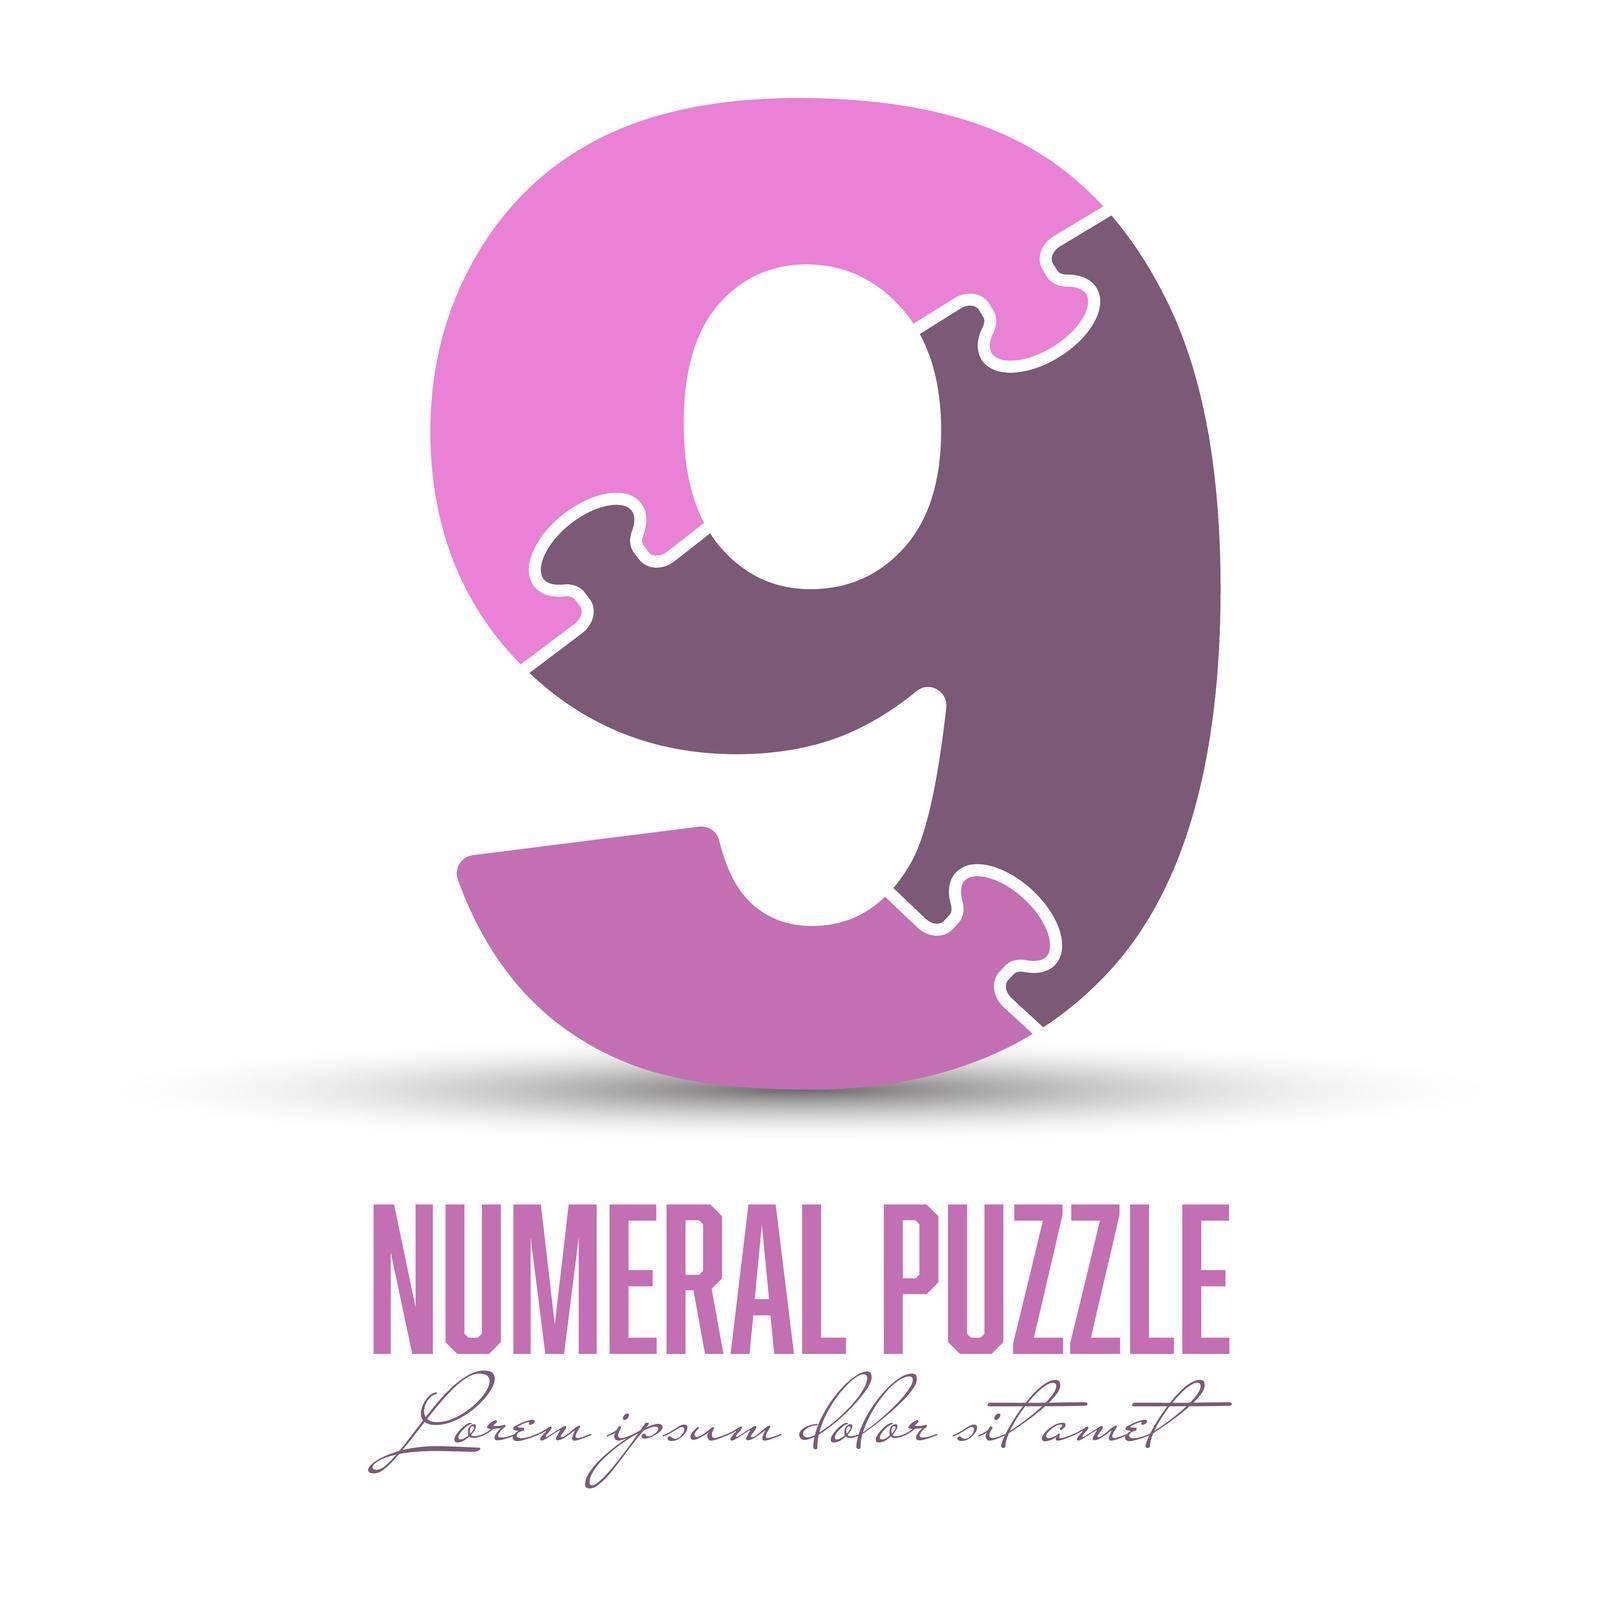 Number 9 is made up of puzzles. Vector illustration for logo, brand logo, sticker or scrapbooking, for education. Simple style.